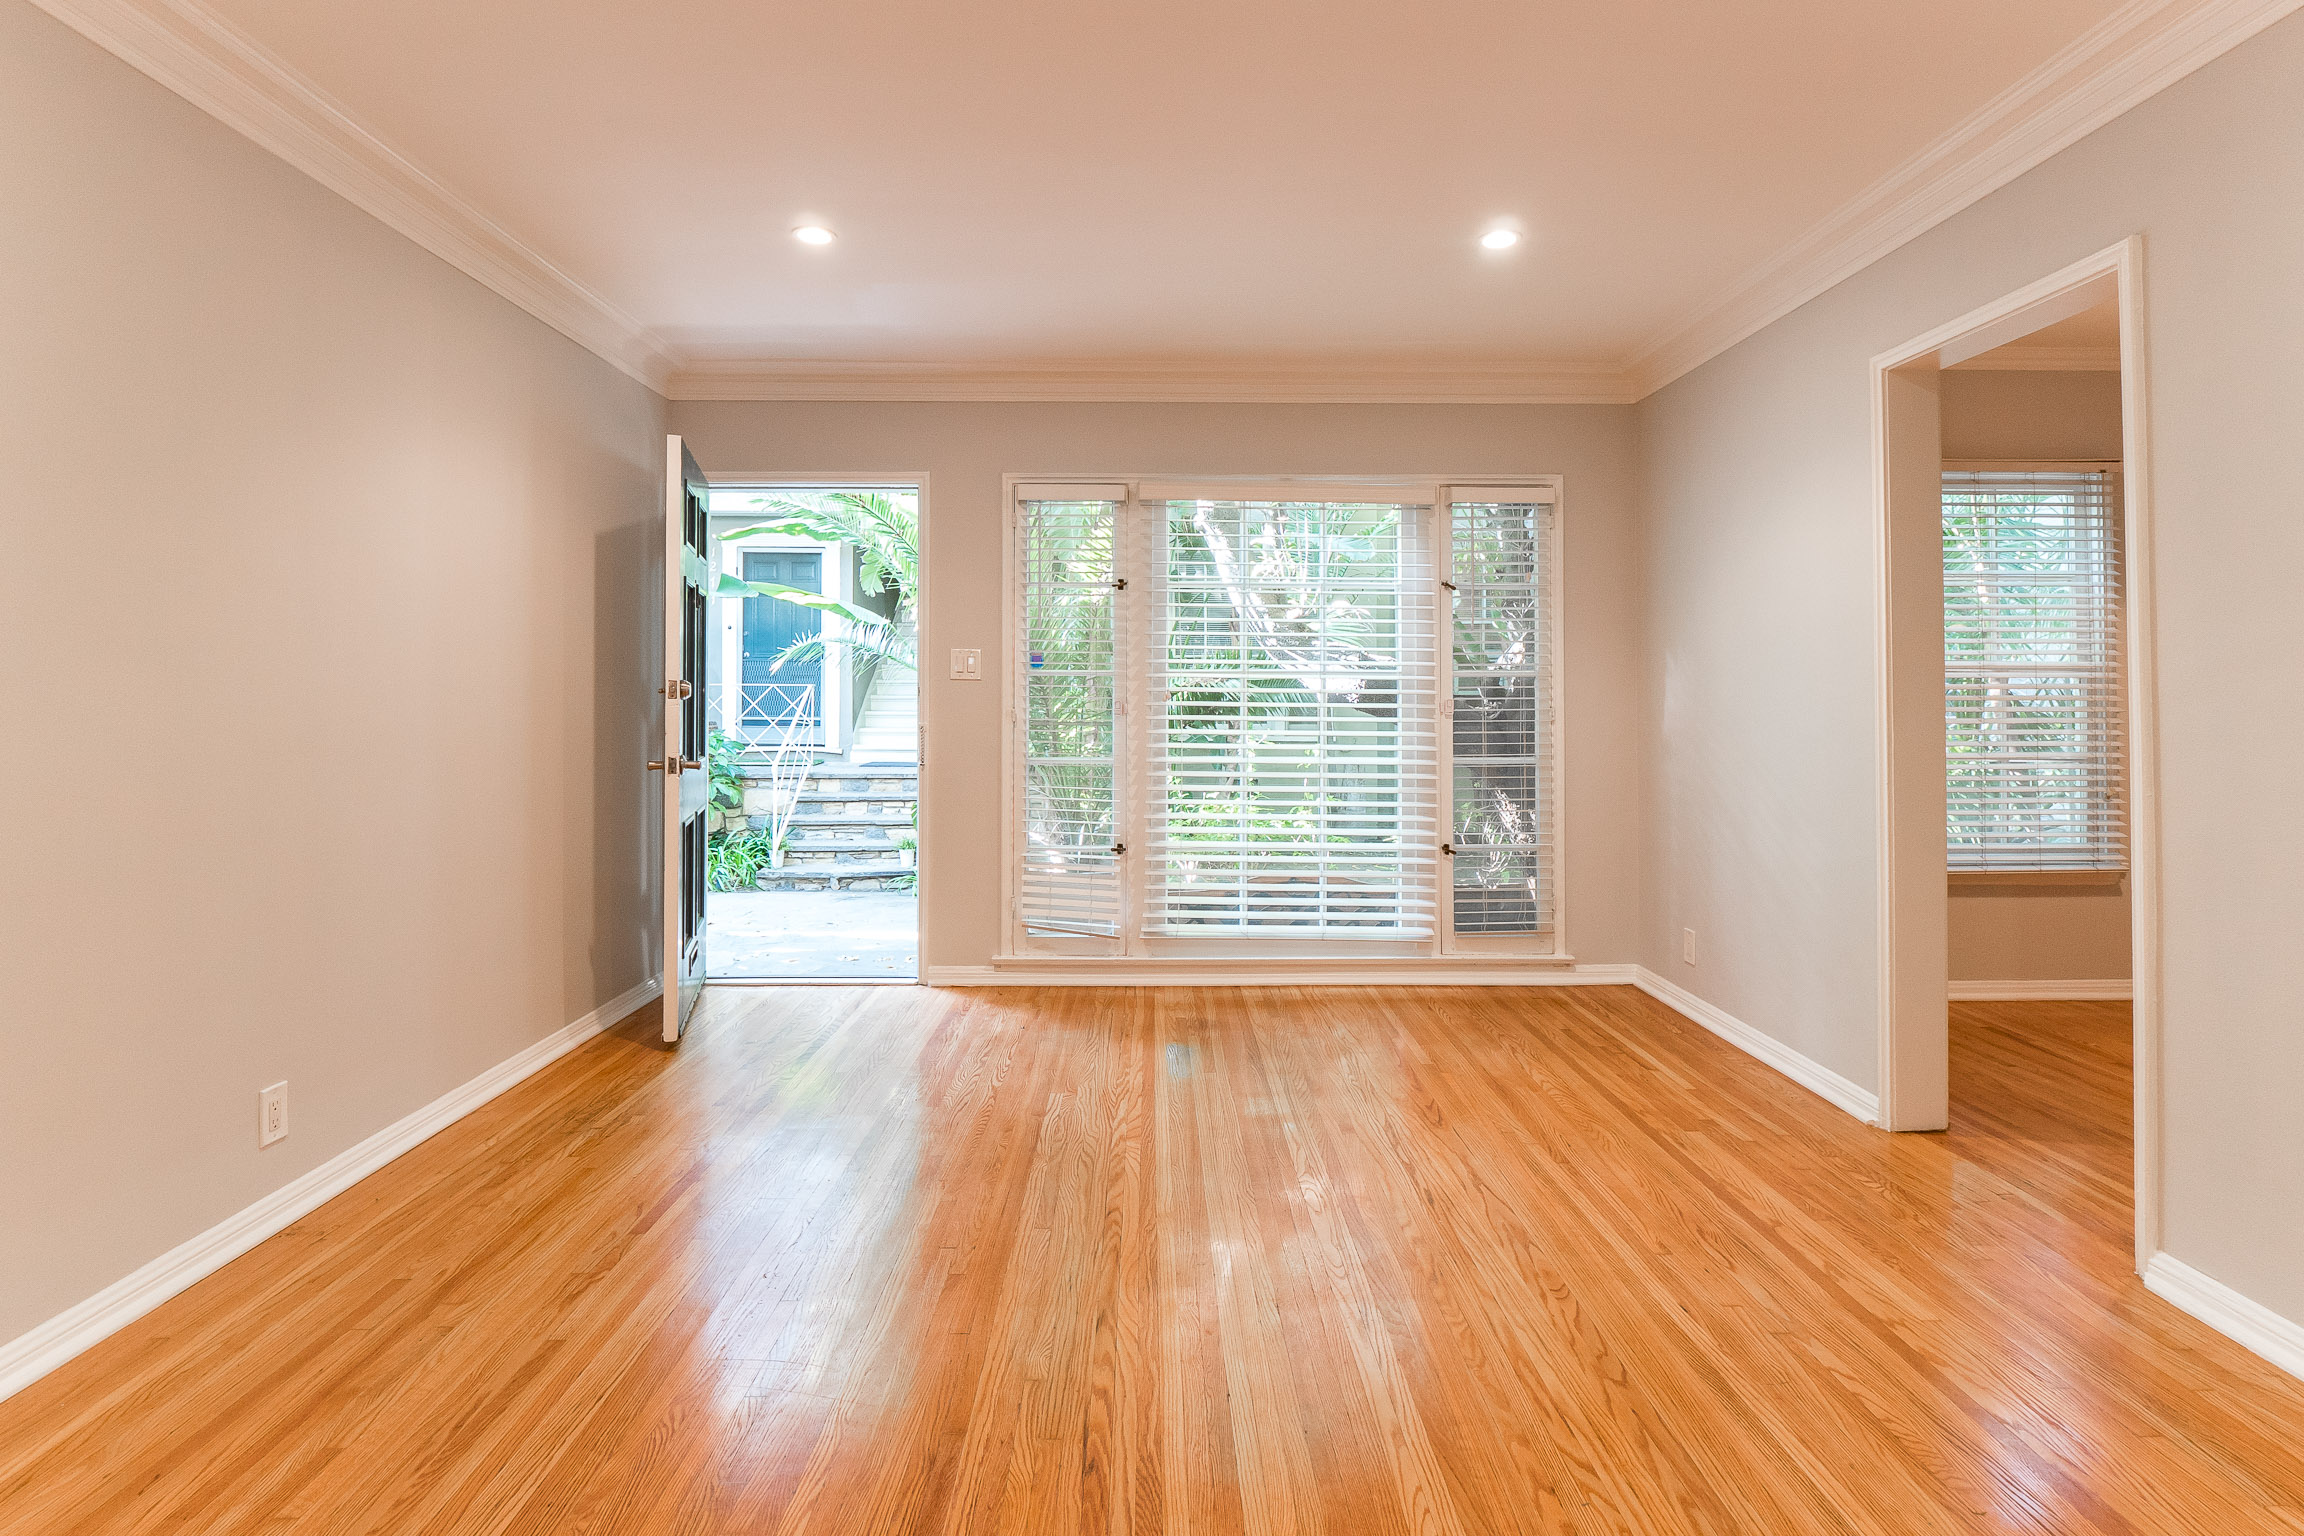 Tranquil Palm Escape 1Bedroom w/ Huge Windows in WeHo! Parking Included!